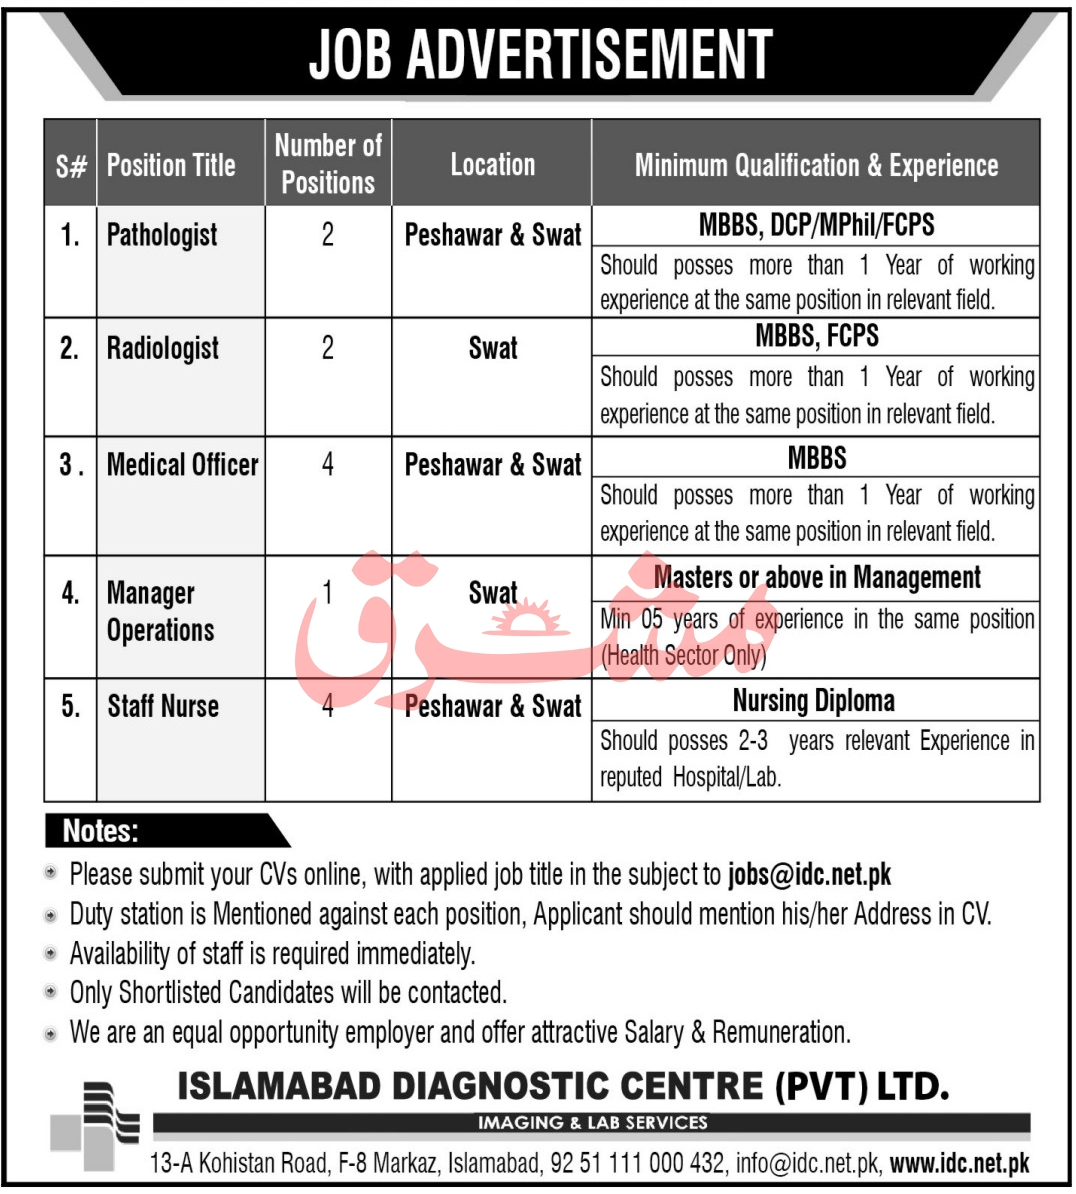 Islamabad Diagnostic Center Jobs 2020 in Peshawar & Swat